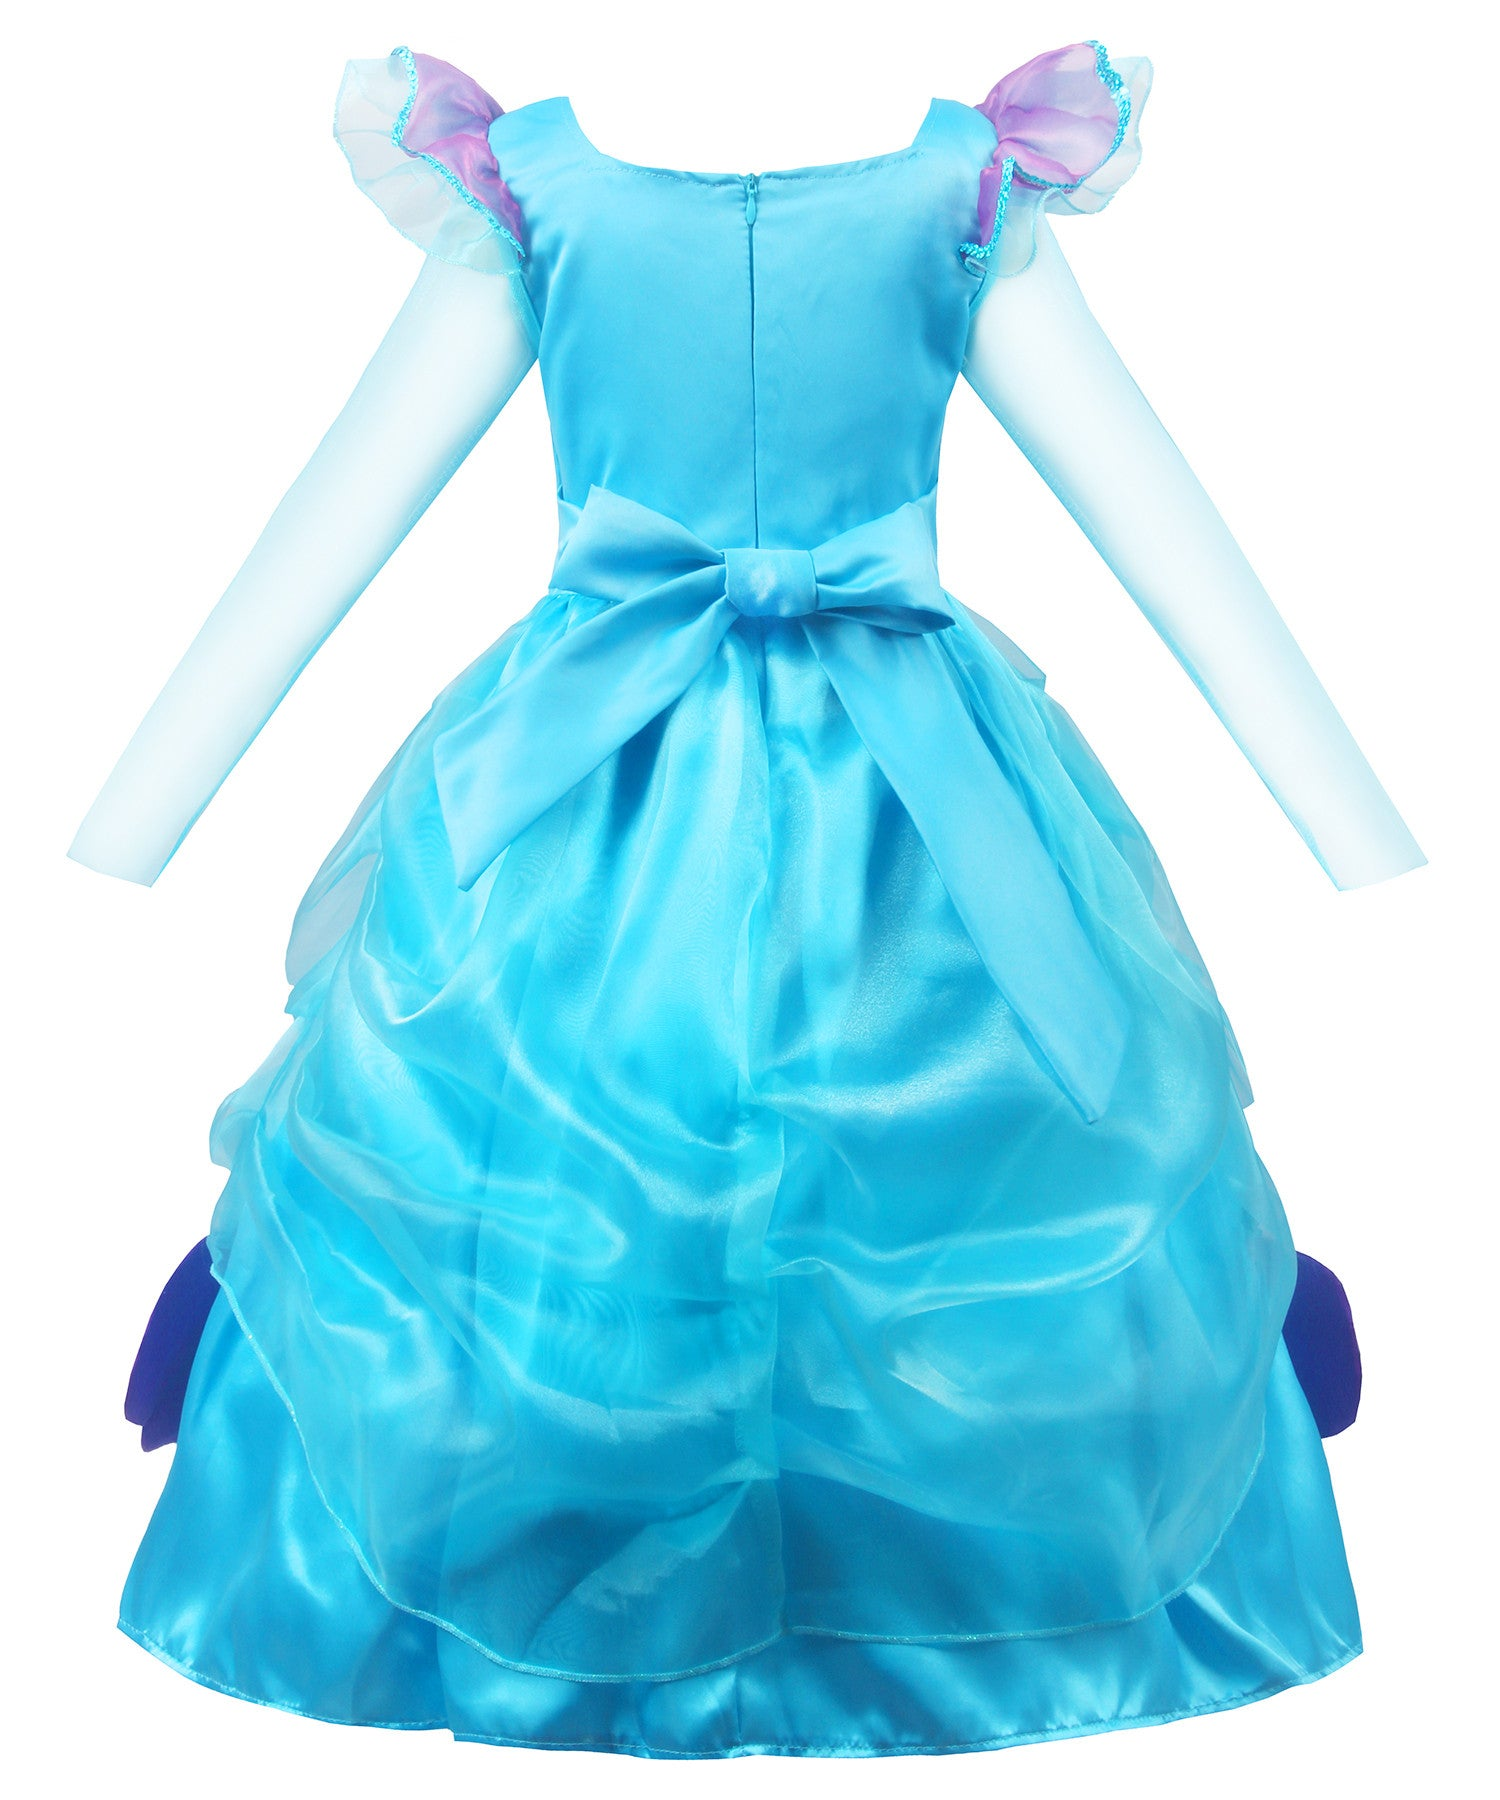 b972a12a6 Long Sleeve Little Girl s Mermaid Costume Princess Dress Up ...